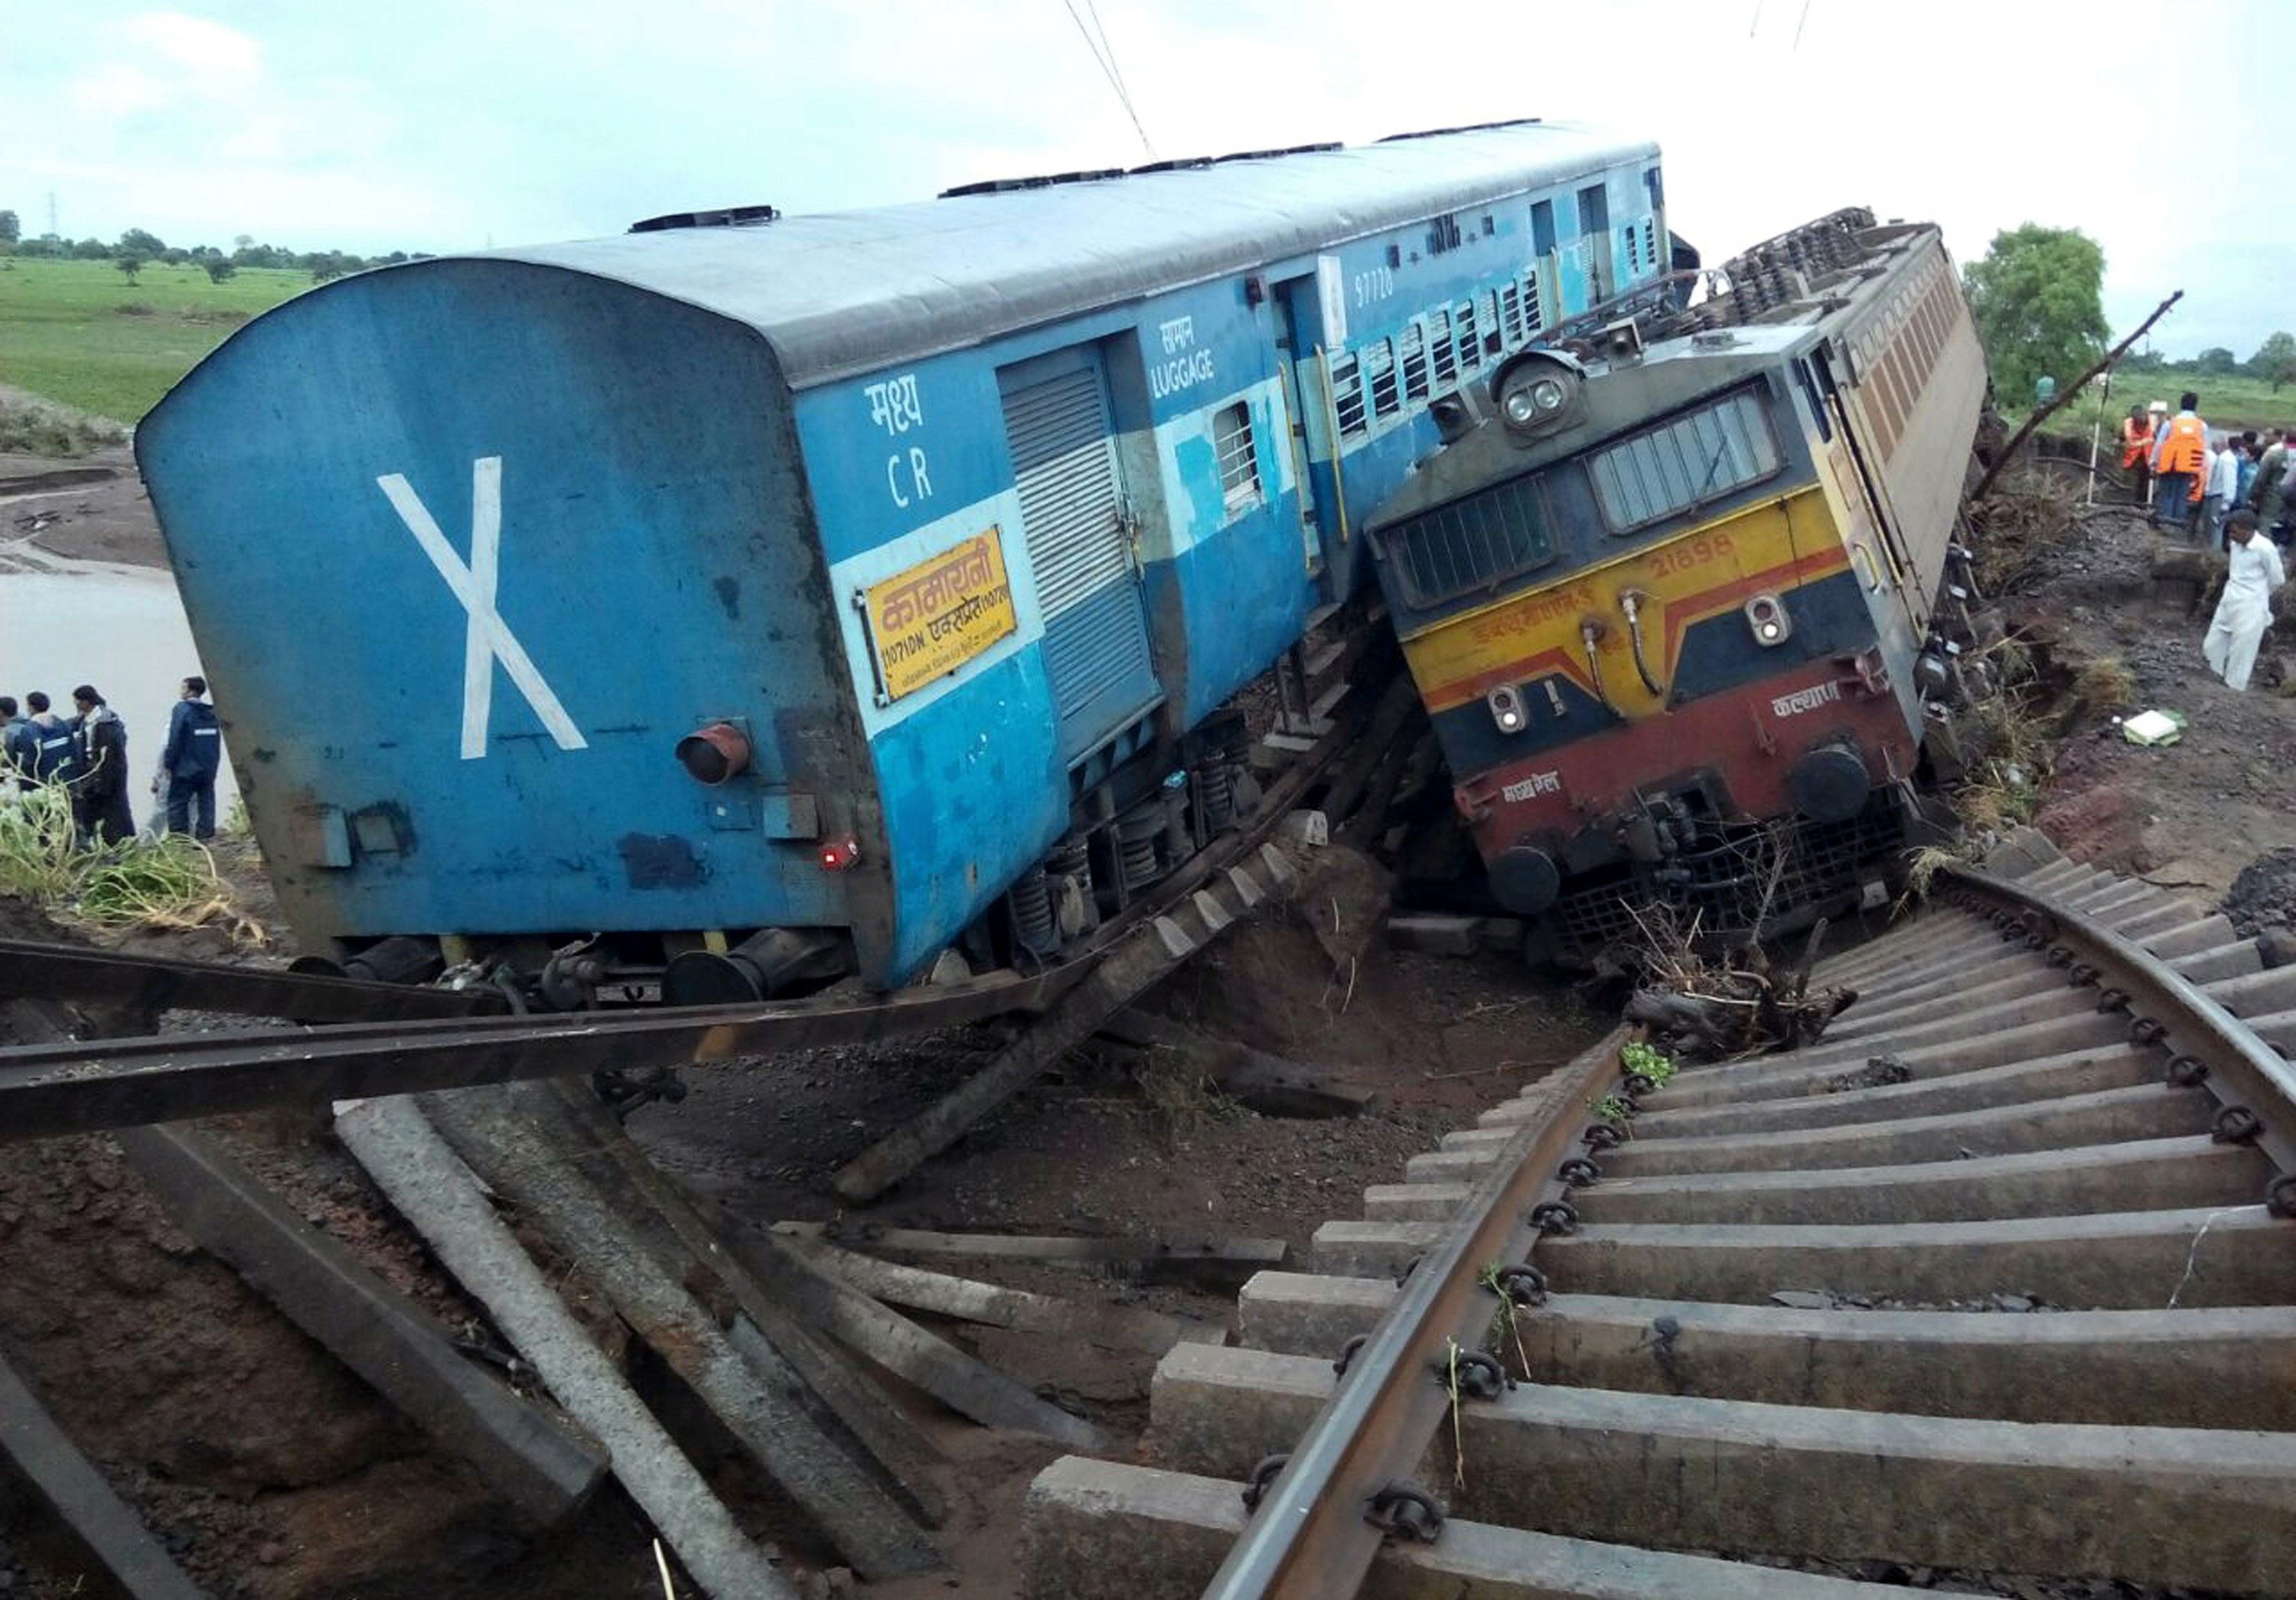 Two Indian passenger trains lay next to each other following a derailment after they were hit by flash floods on a bridge outside the town of Harda in Madhya Pradesh state on August 5, 2015